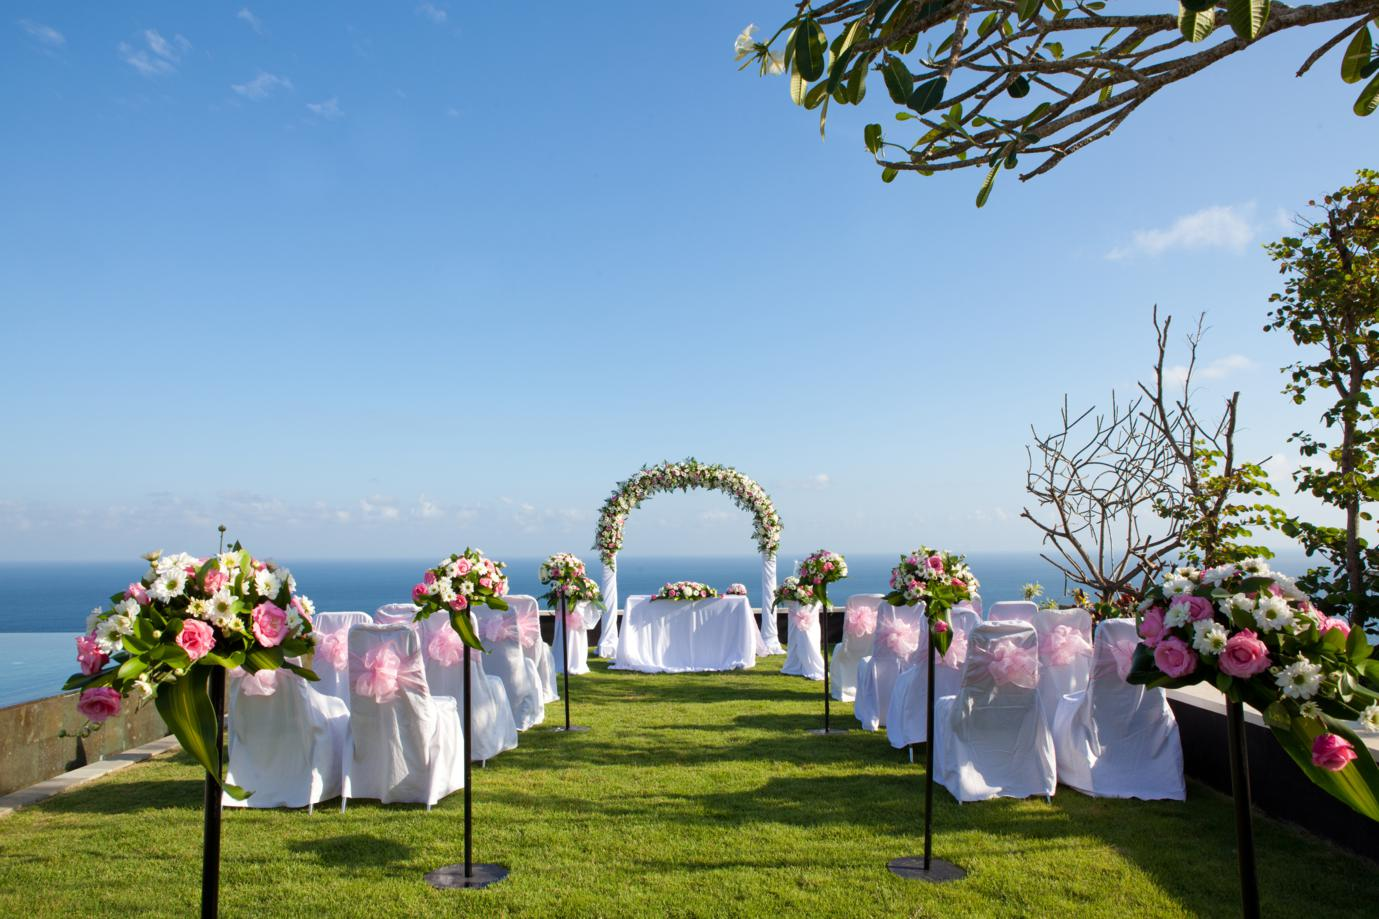 Outdoor Wedding Venue Photo Gallery: An Exclusive Wedding Blog. - Part 9